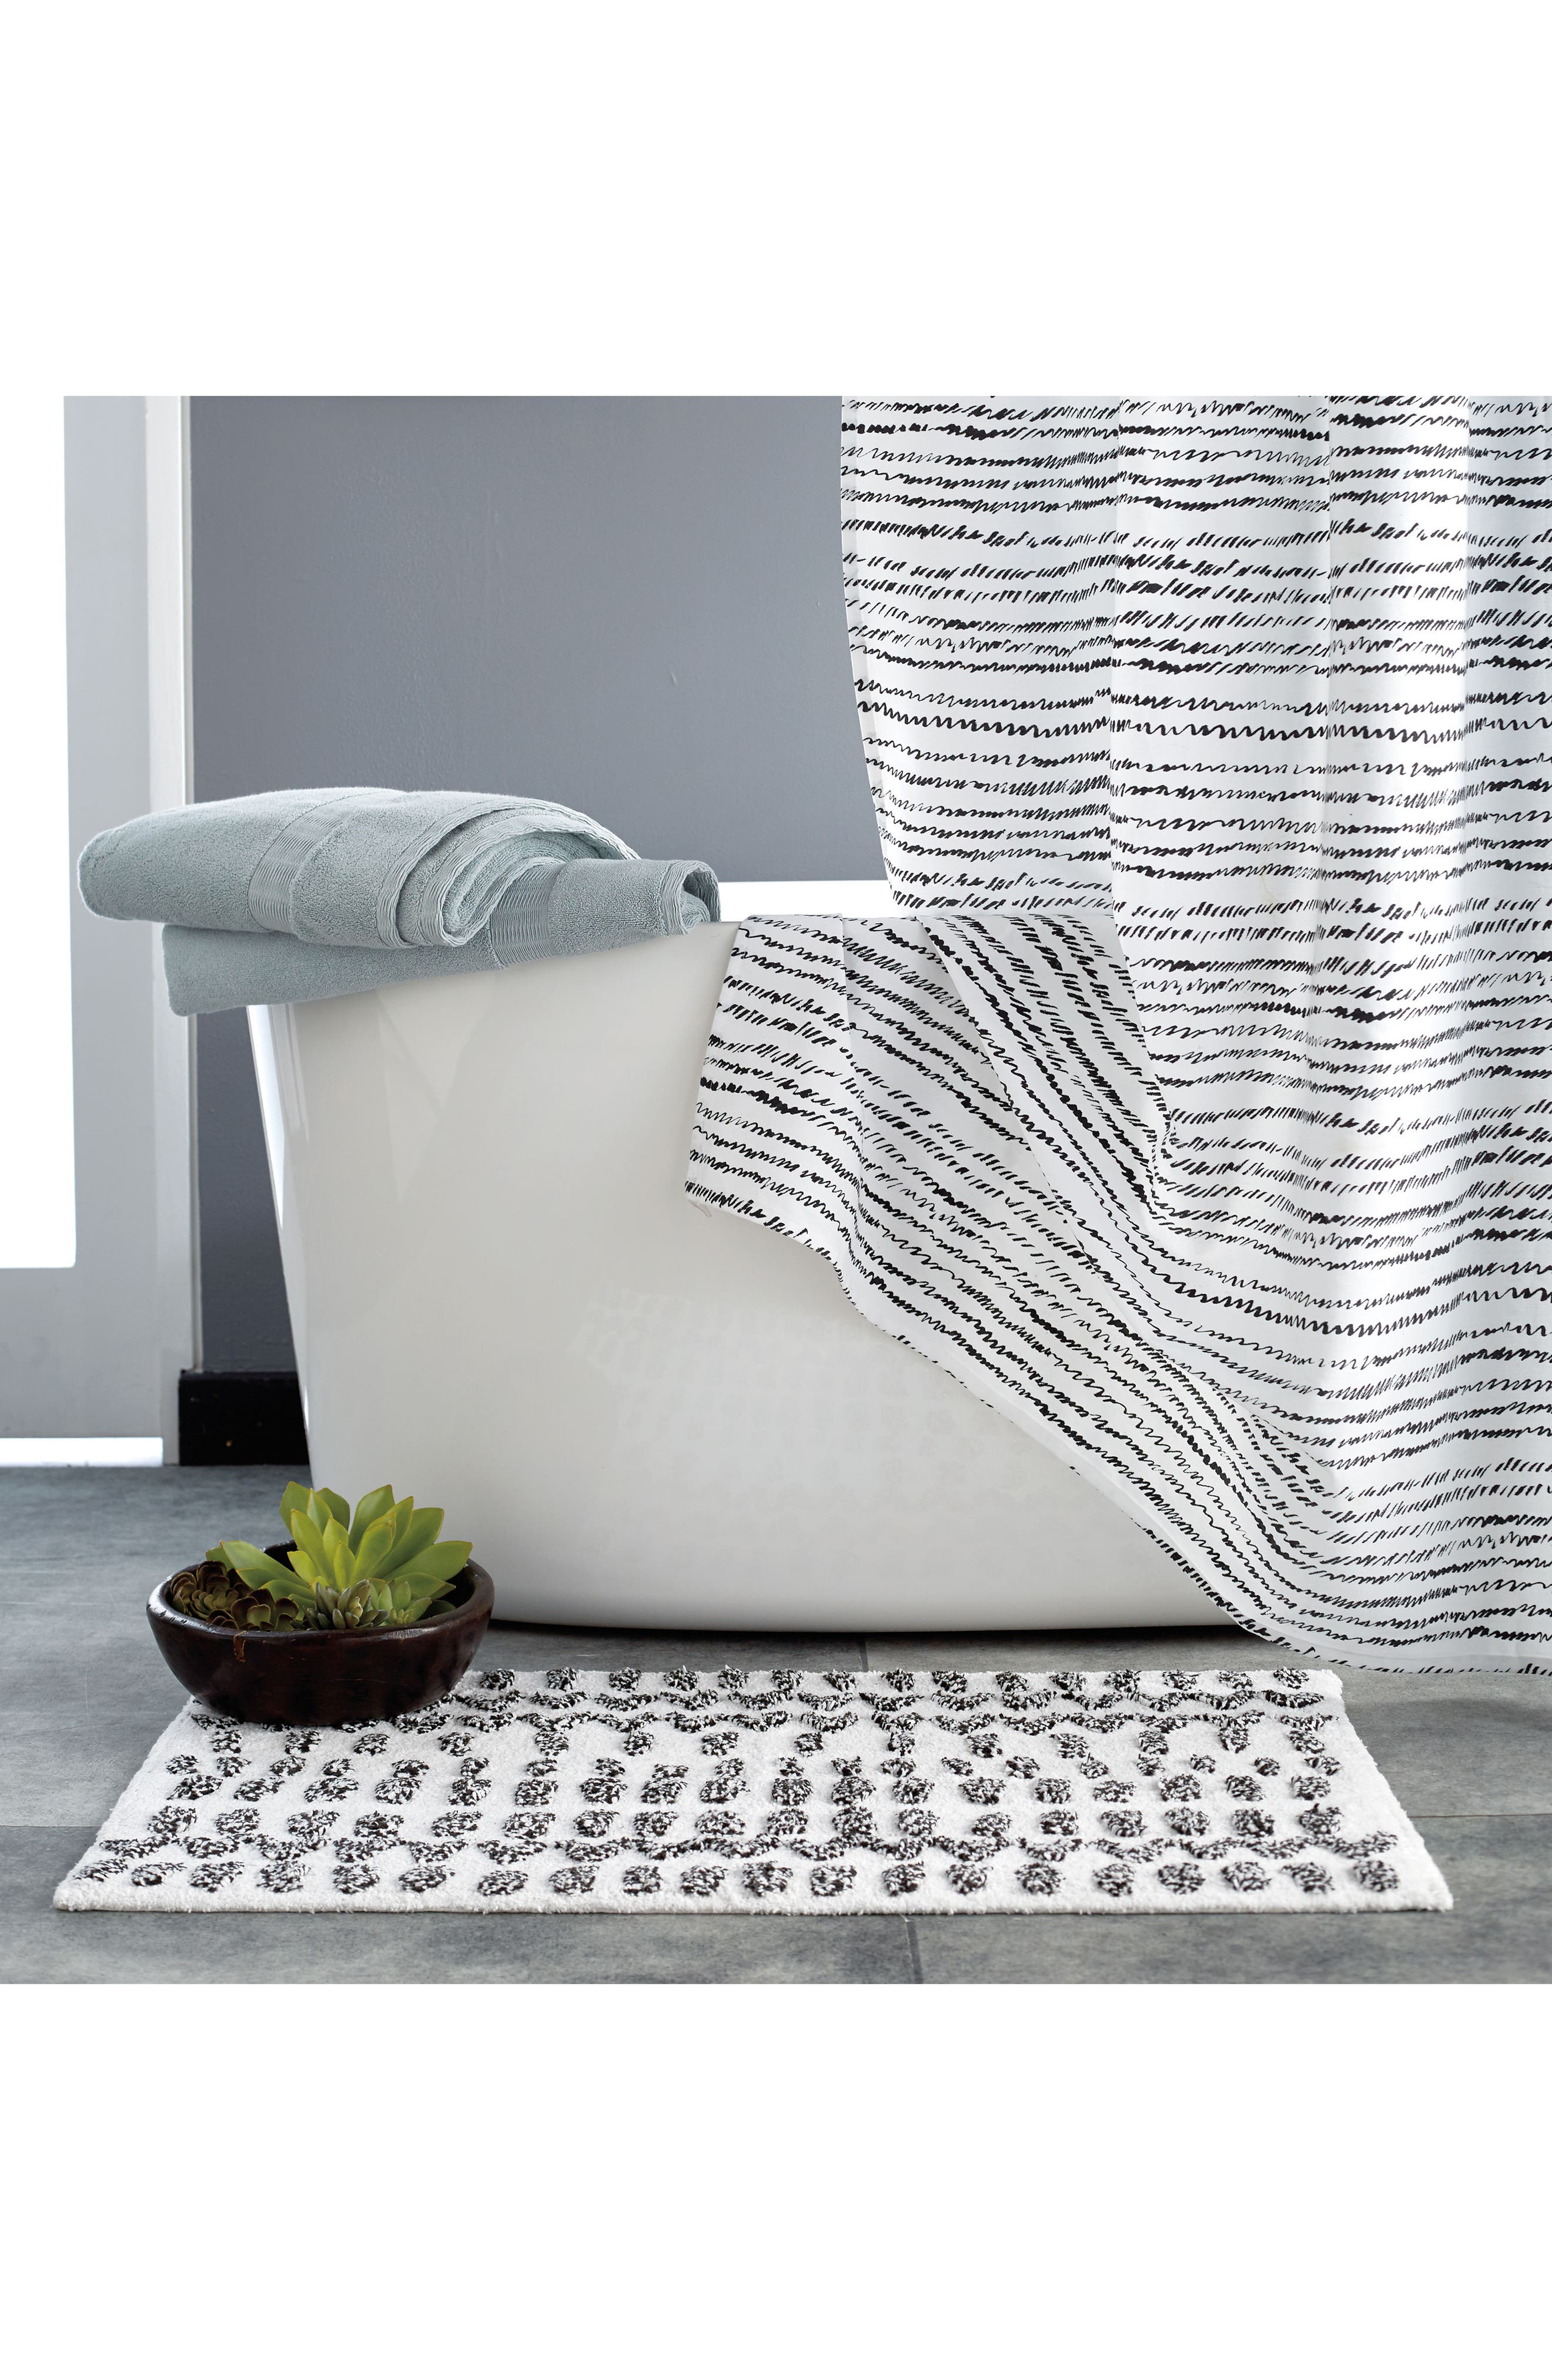 Vibe Bath Rug,                             Alternate thumbnail 2, color,                             Black/ White